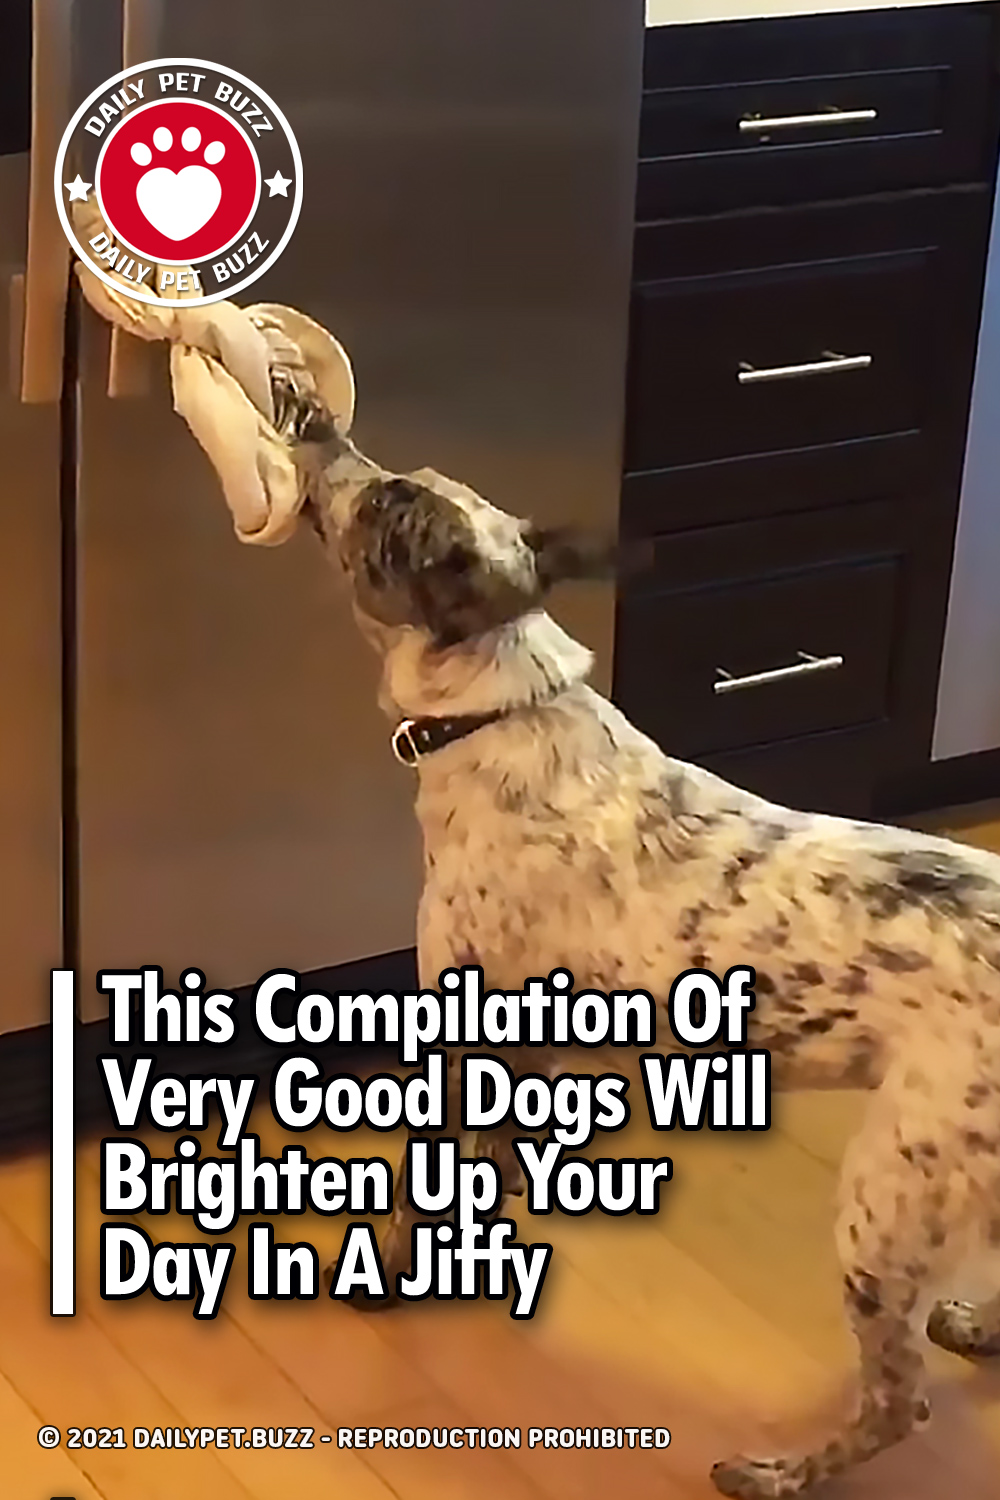 This Compilation Of Very Good Dogs Will Brighten Up Your Day In A Jiffy